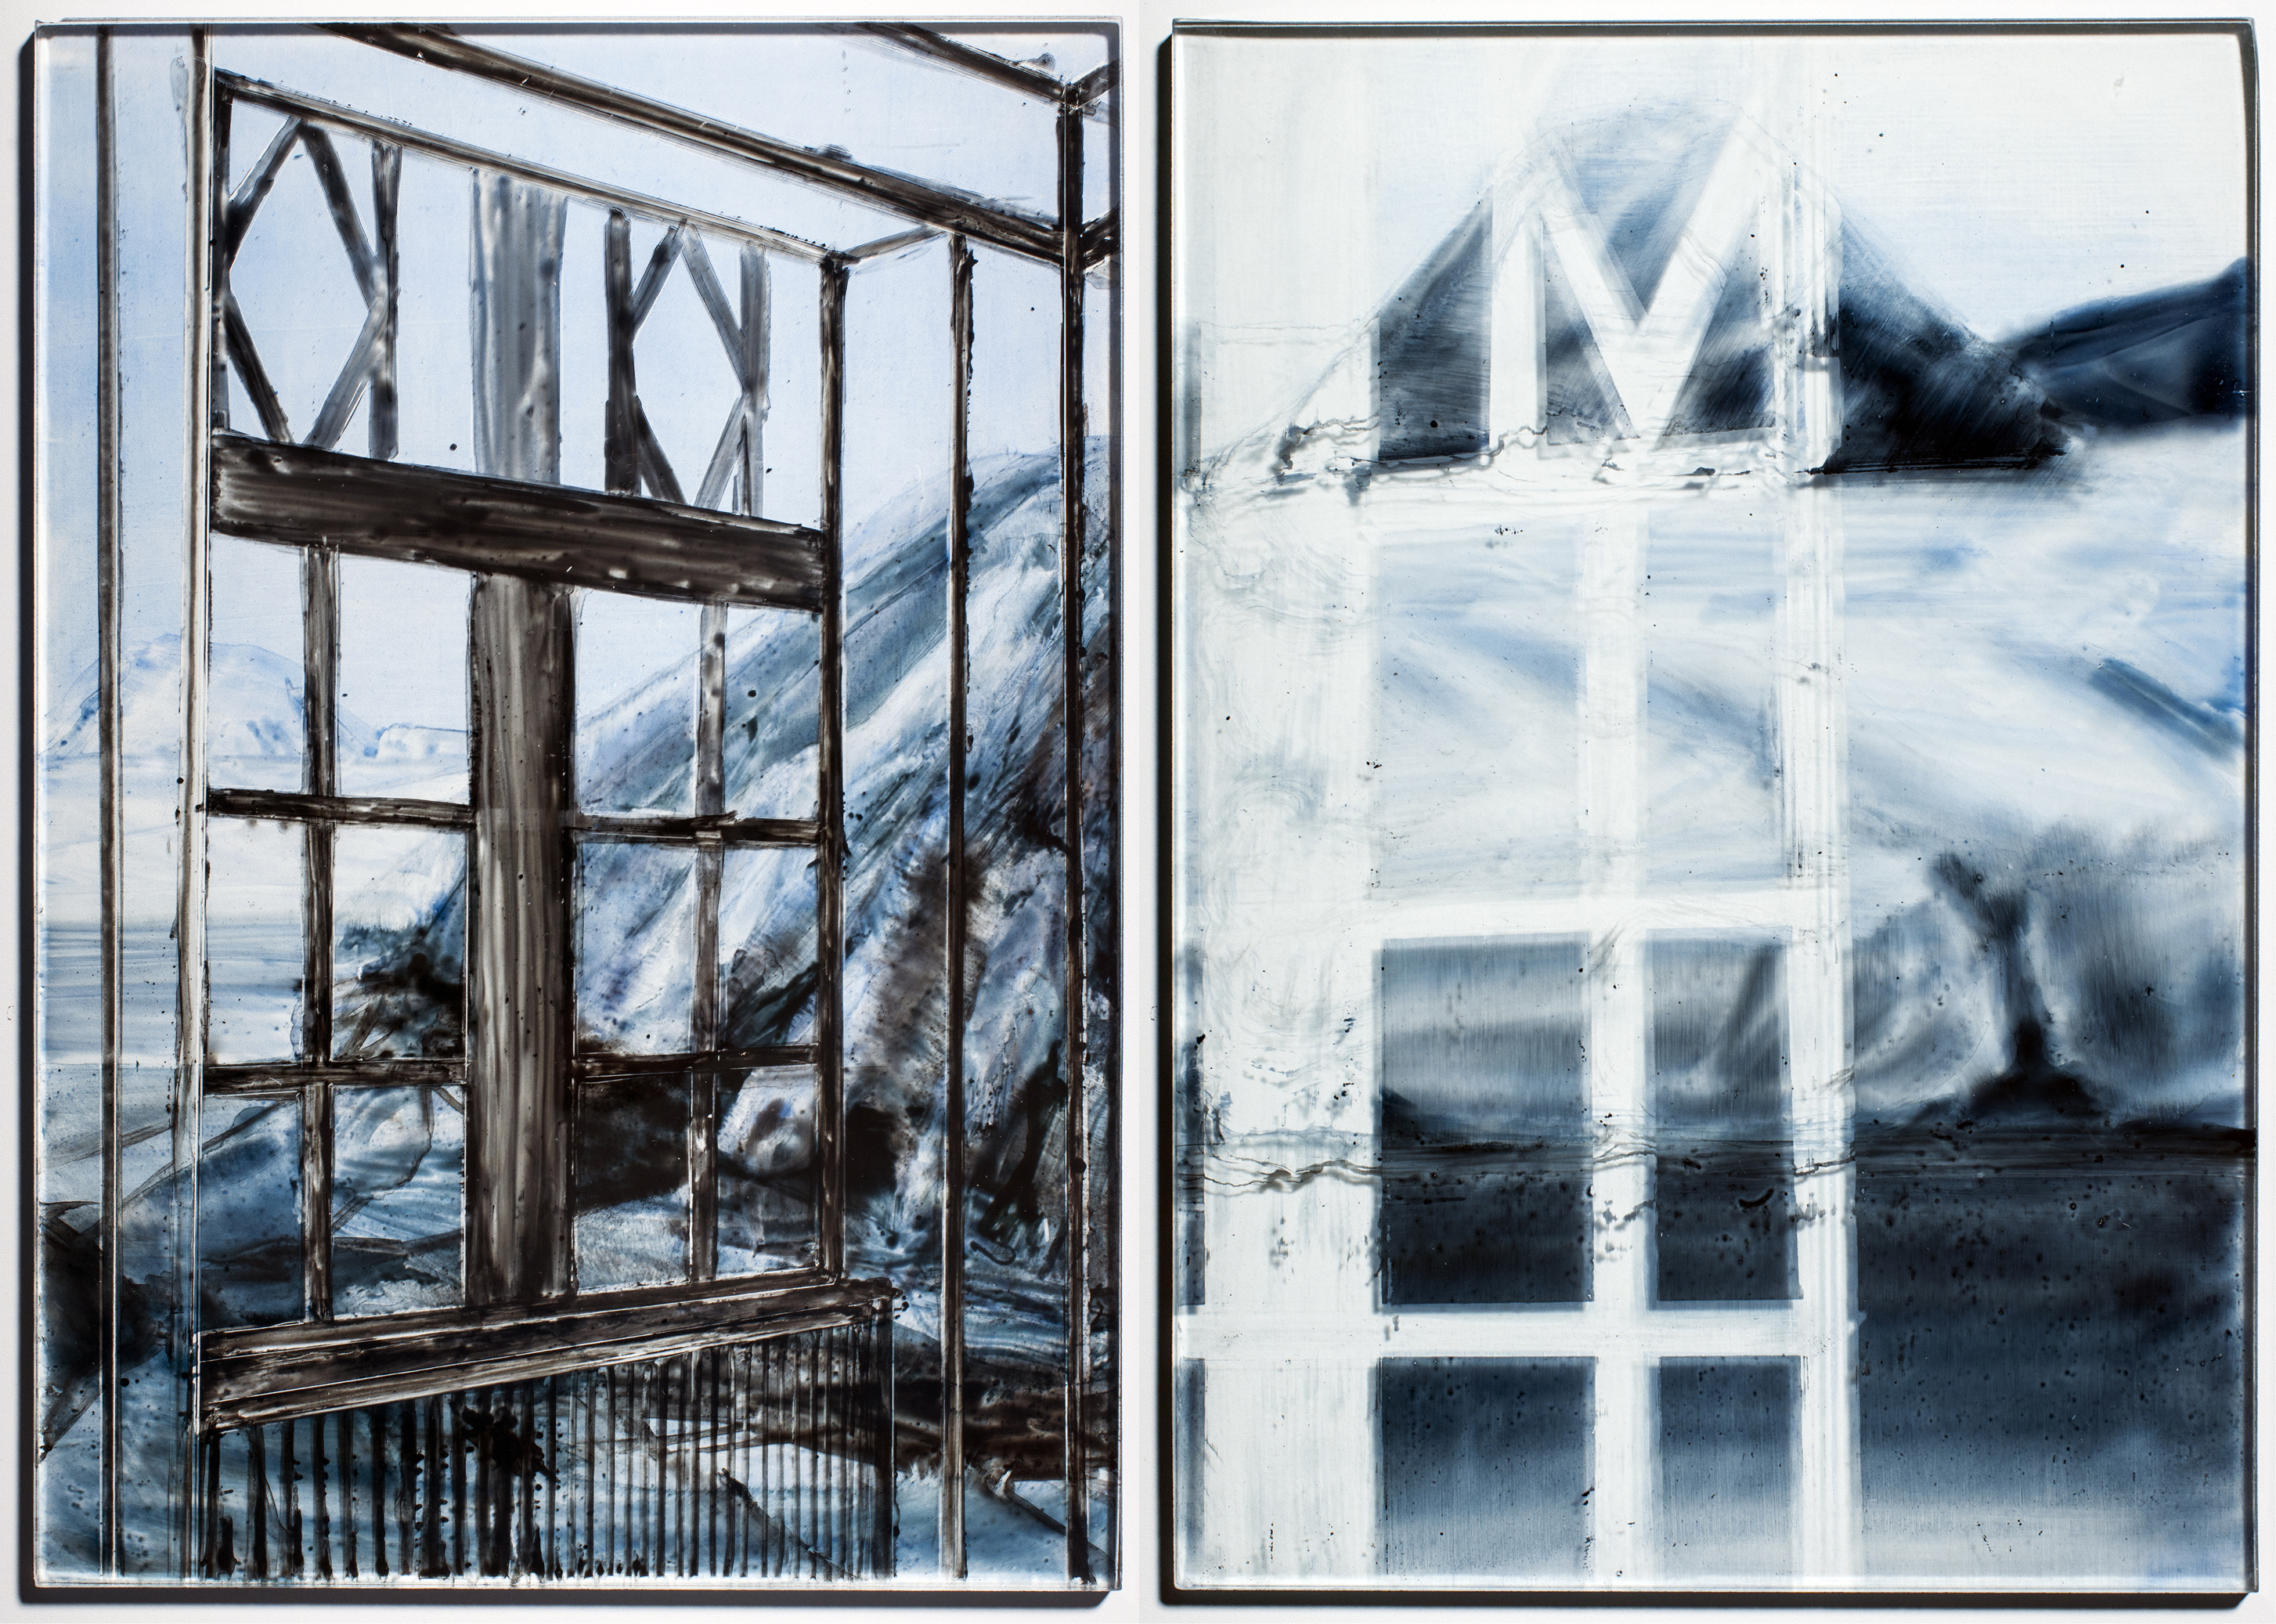 Pyramiden in A Villa  - 2014  emaille burnt on glass  34 x 23.5 cm  x2 Interesse? Contacteer ons